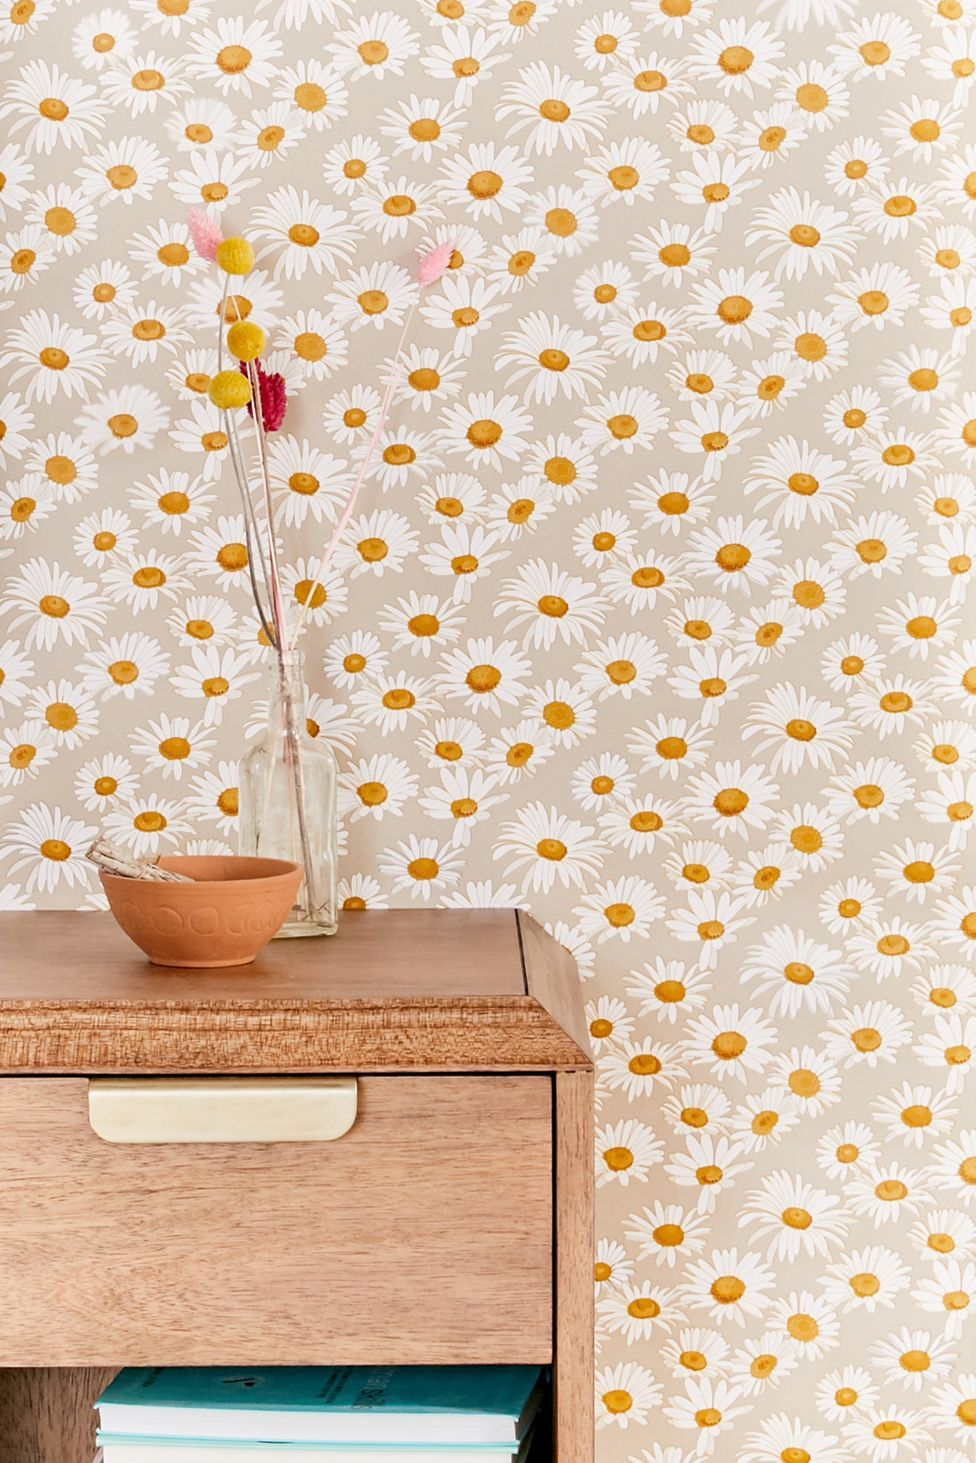 Daisies Removable Wallpaper Urban Outfitters Stick On Wallpaper Removable Wallpaper Daisy Wallpaper